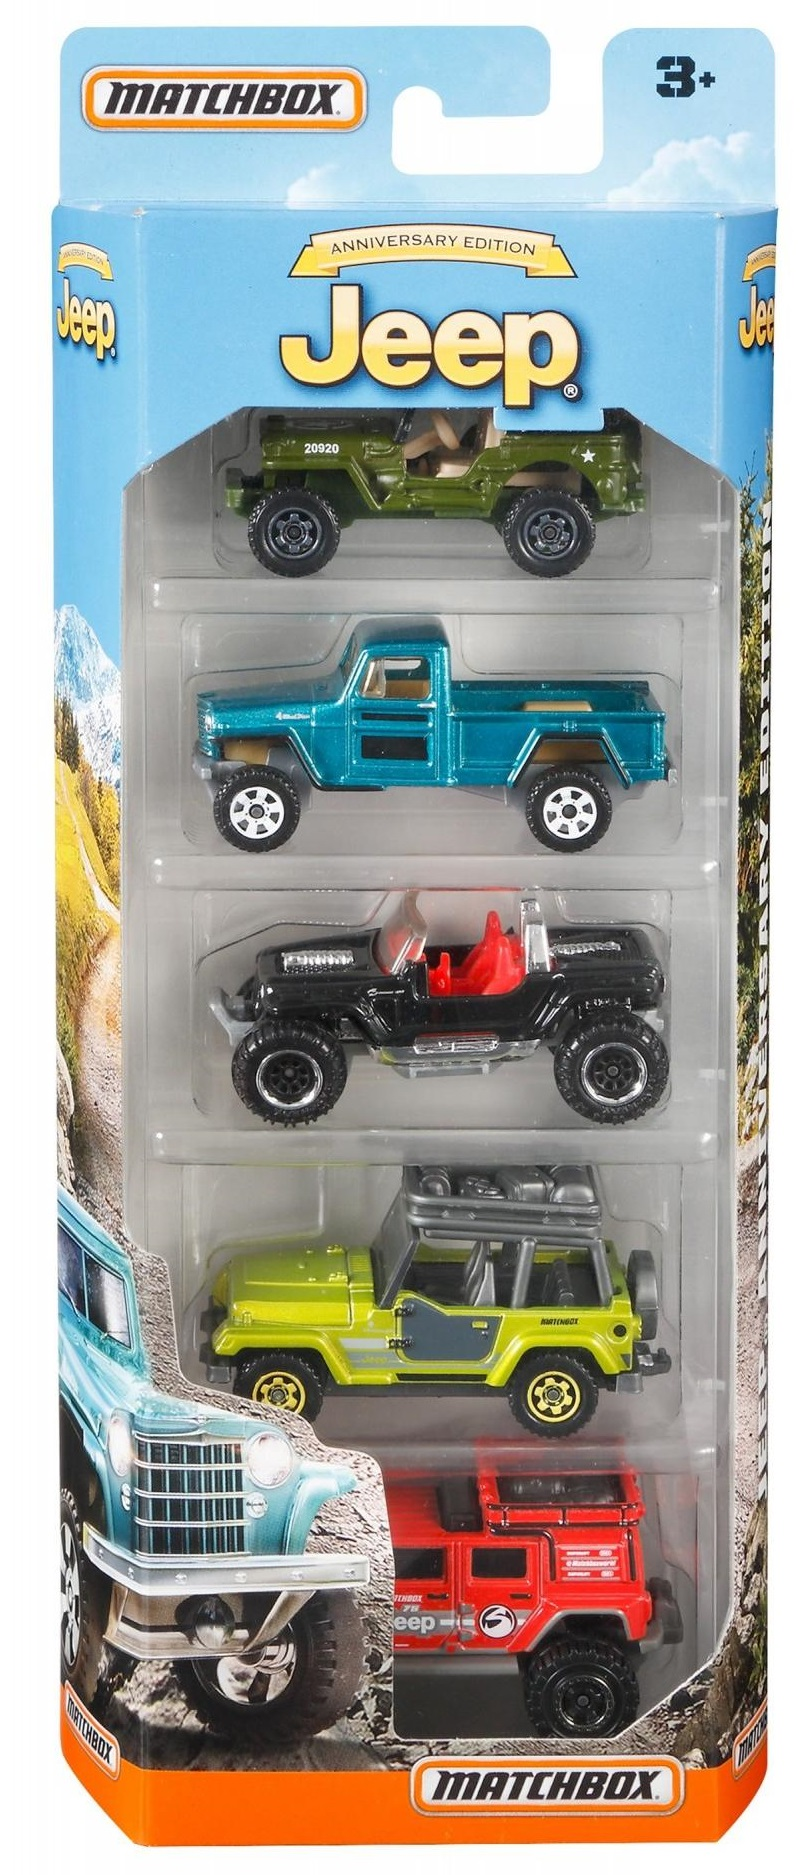 Aev Jeep For Sale >> Jeep Toys and Toy Jeeps for Sale - JustForJeeps.com